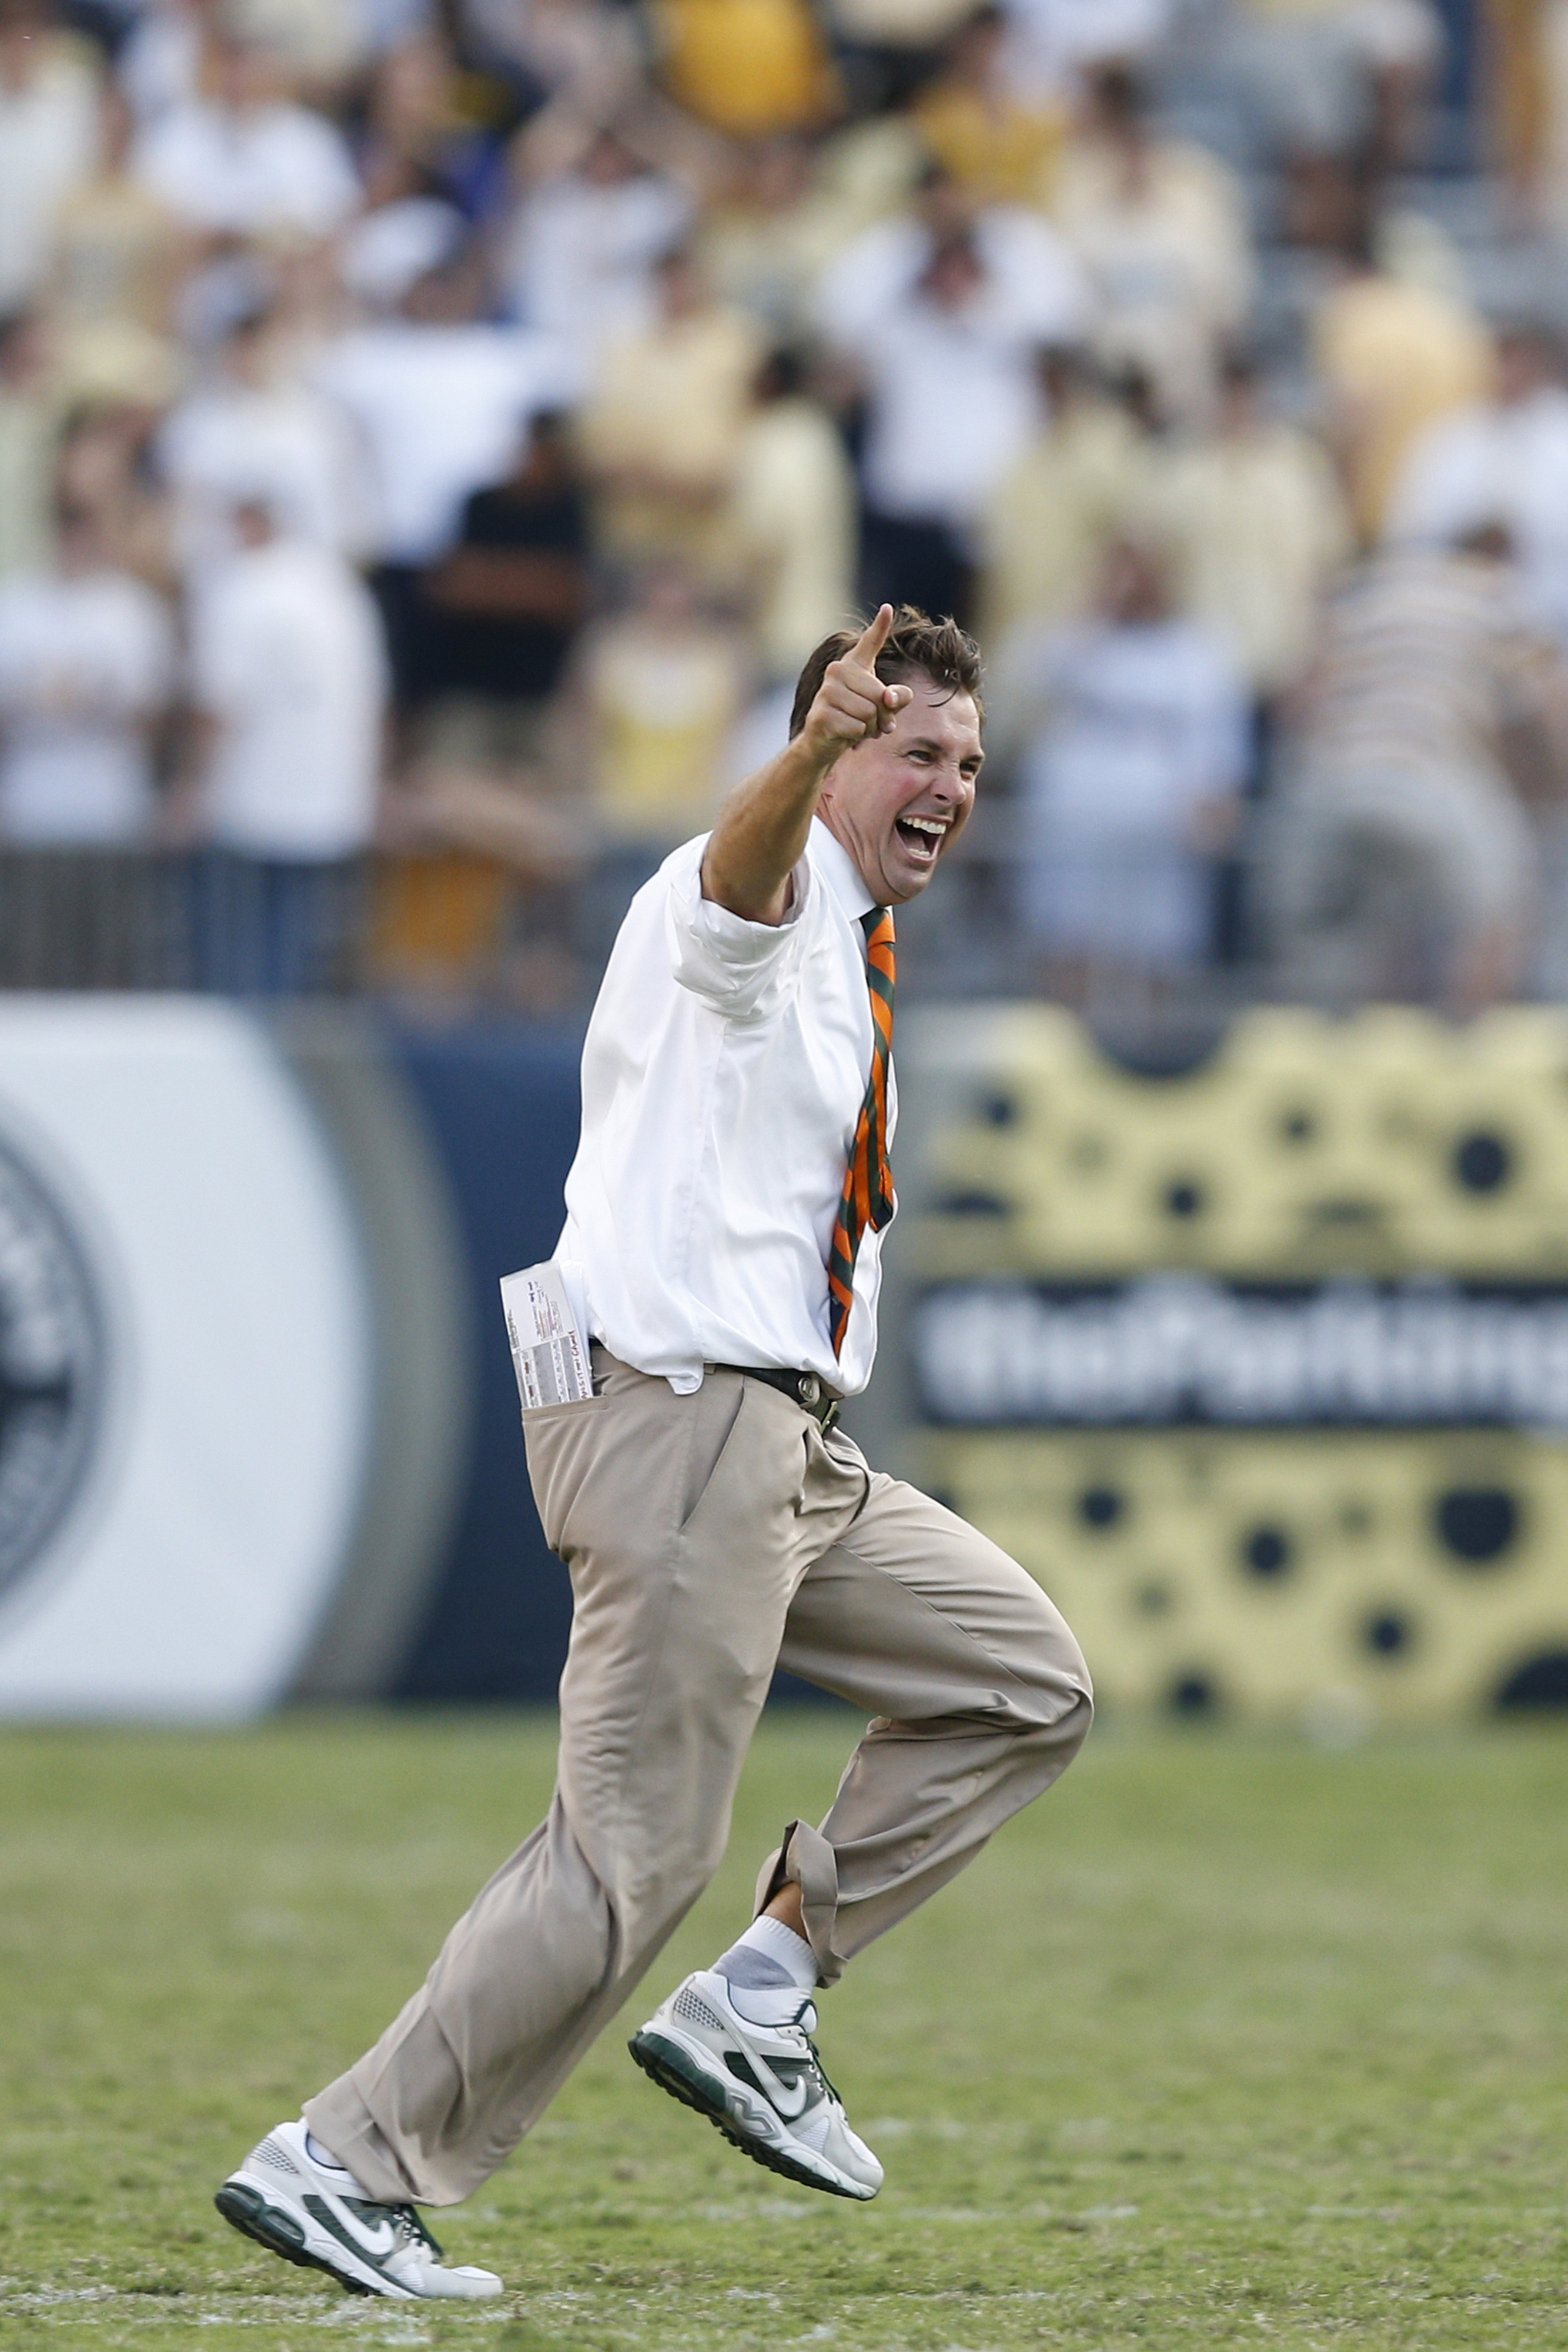 Yup. That's pretty much our reaction too, coach.